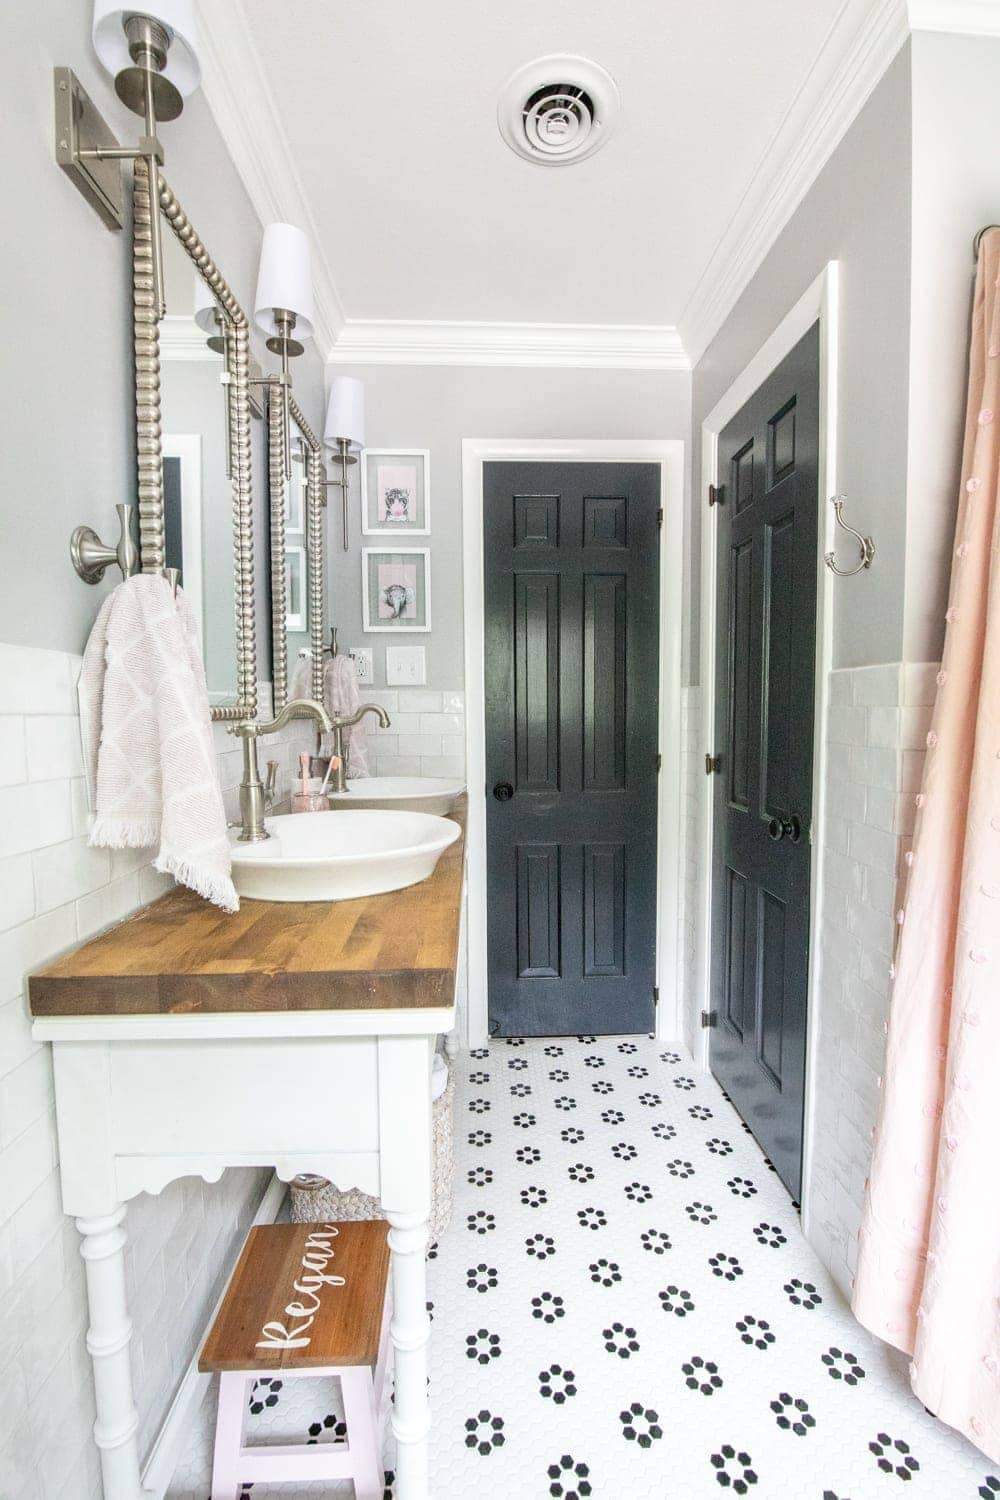 Girls' Bathroom Decor Details & Sources | Console table converted into a vanity with vessel sinks and retro flower floor tile | Benjamin Moore Stonington Gray walls and Benjamin Moore Wrought Iron doors